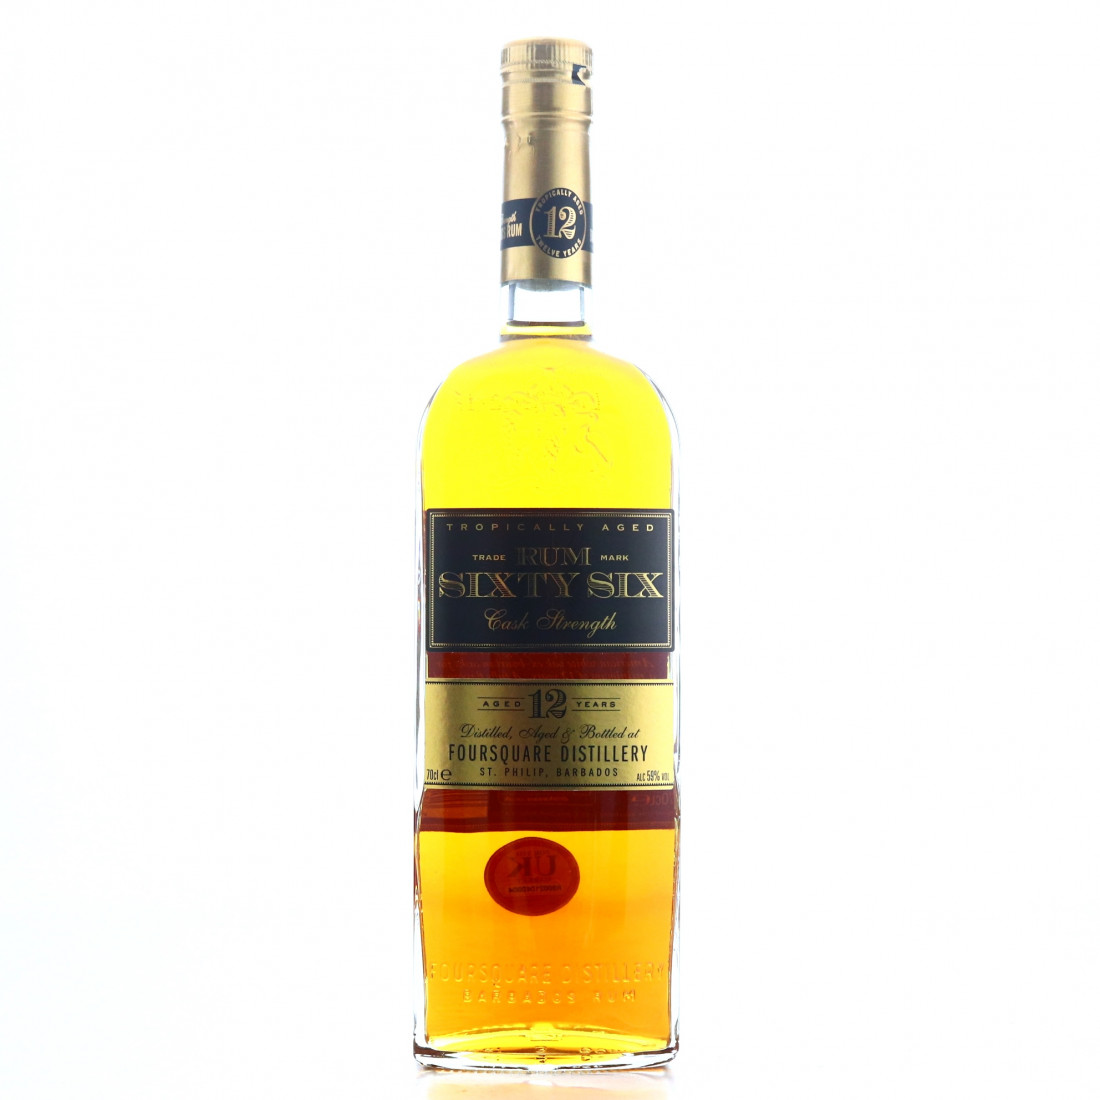 Foursquare Rum Sixty Six 12 Year Old Cask Strength